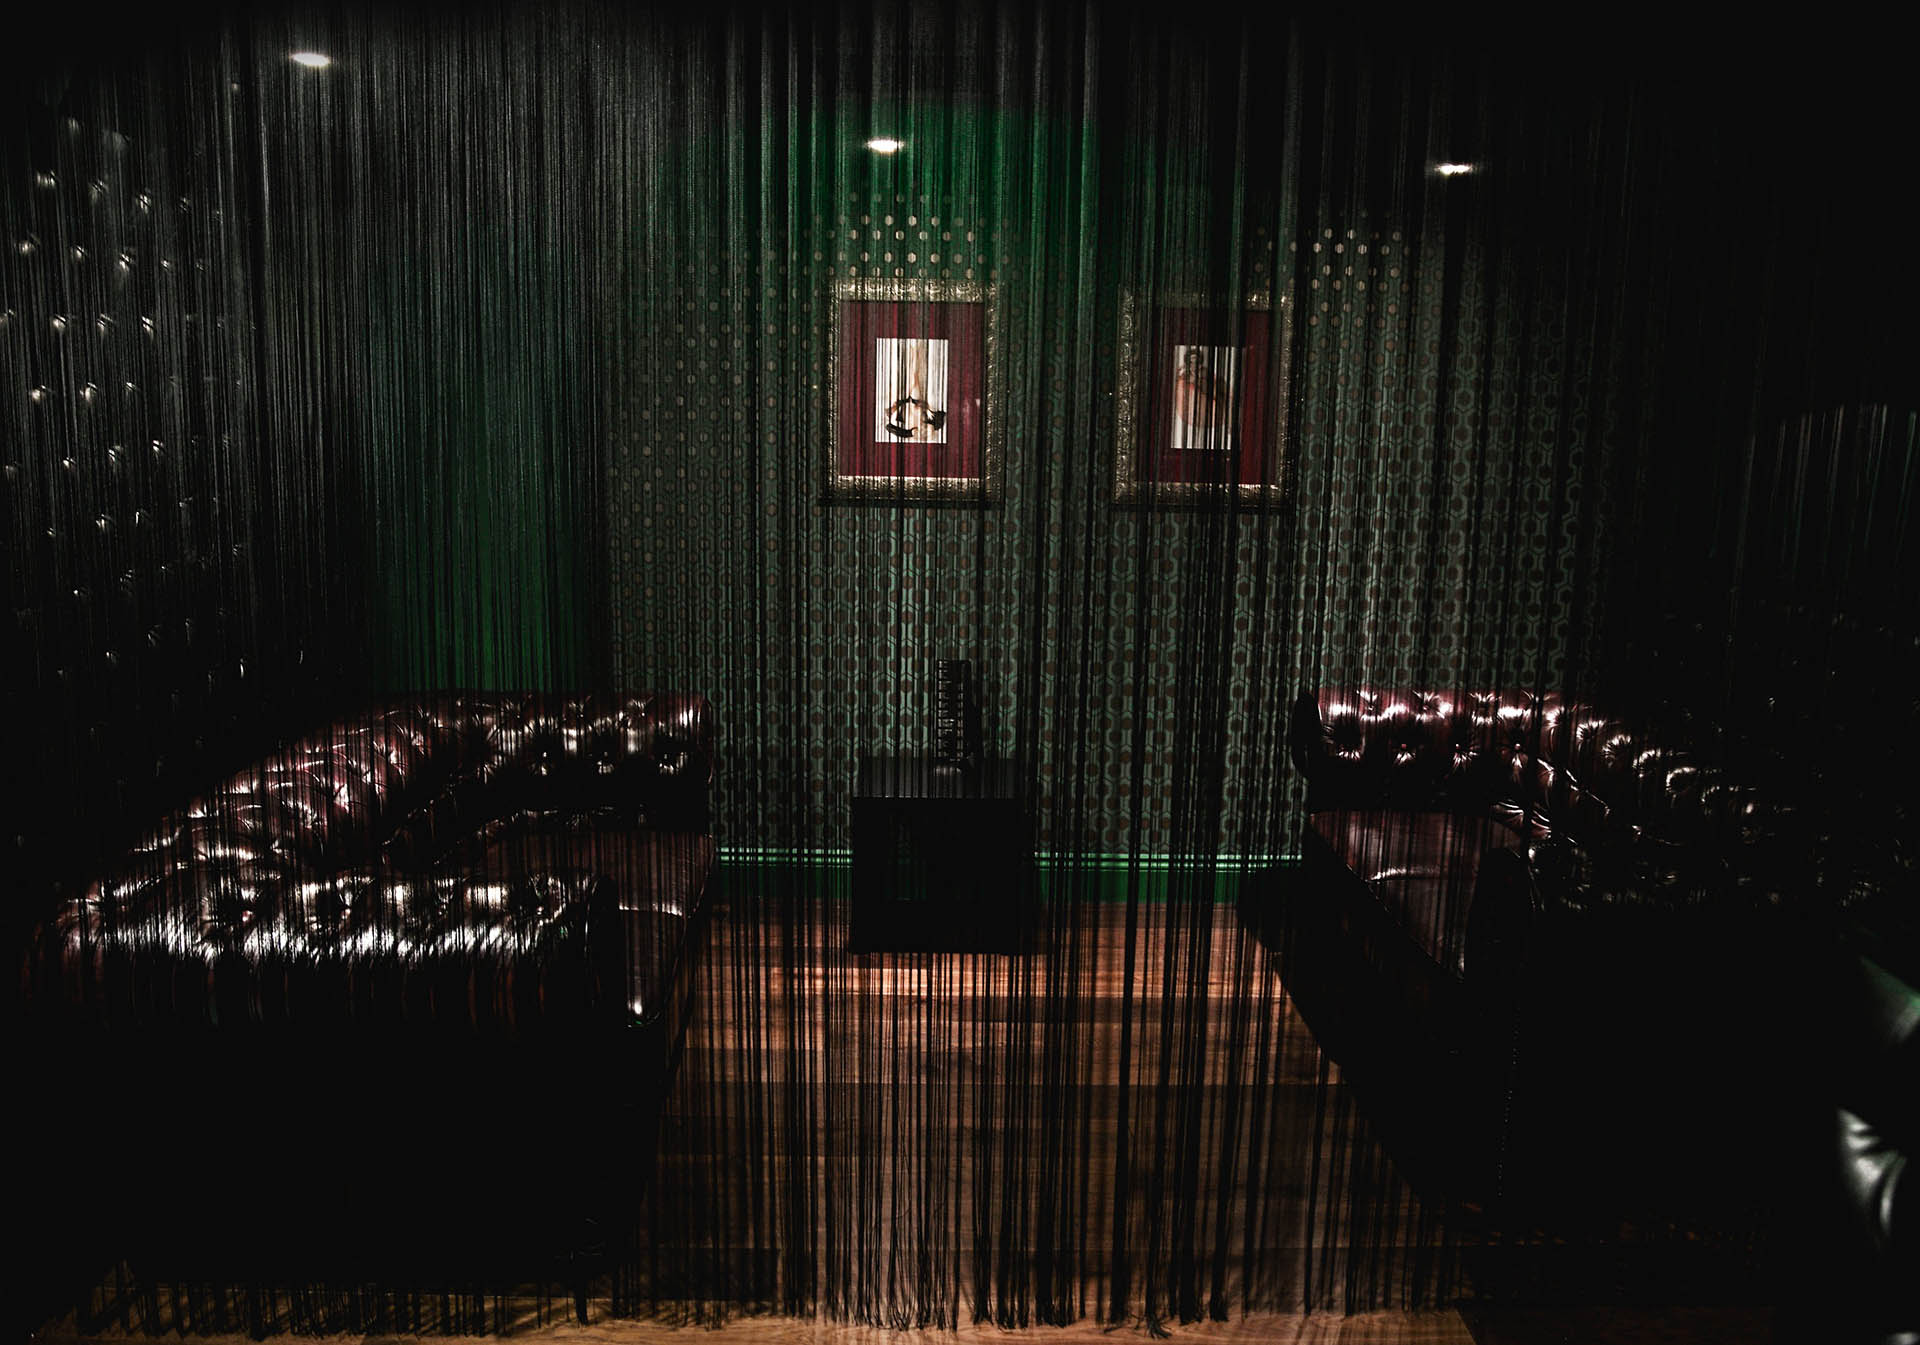 vanity-curtain-covered-seating-image-1